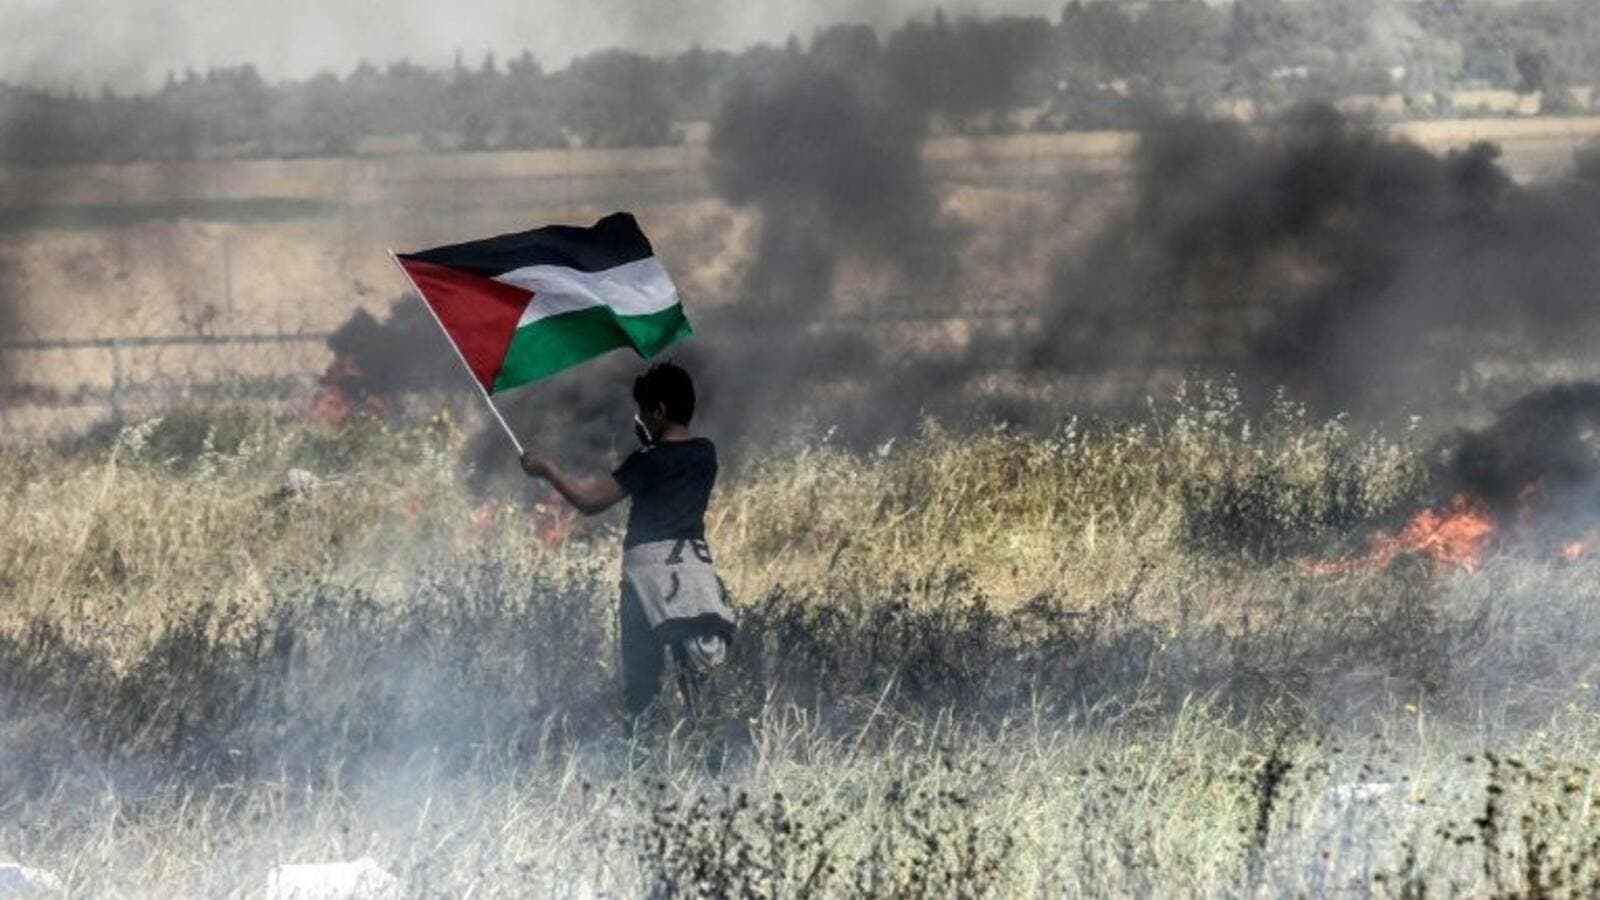 A Palestinian boy holds his national flag during clashes with Israeli security forces on the Gaza-Israel border (AFP/File Photo)